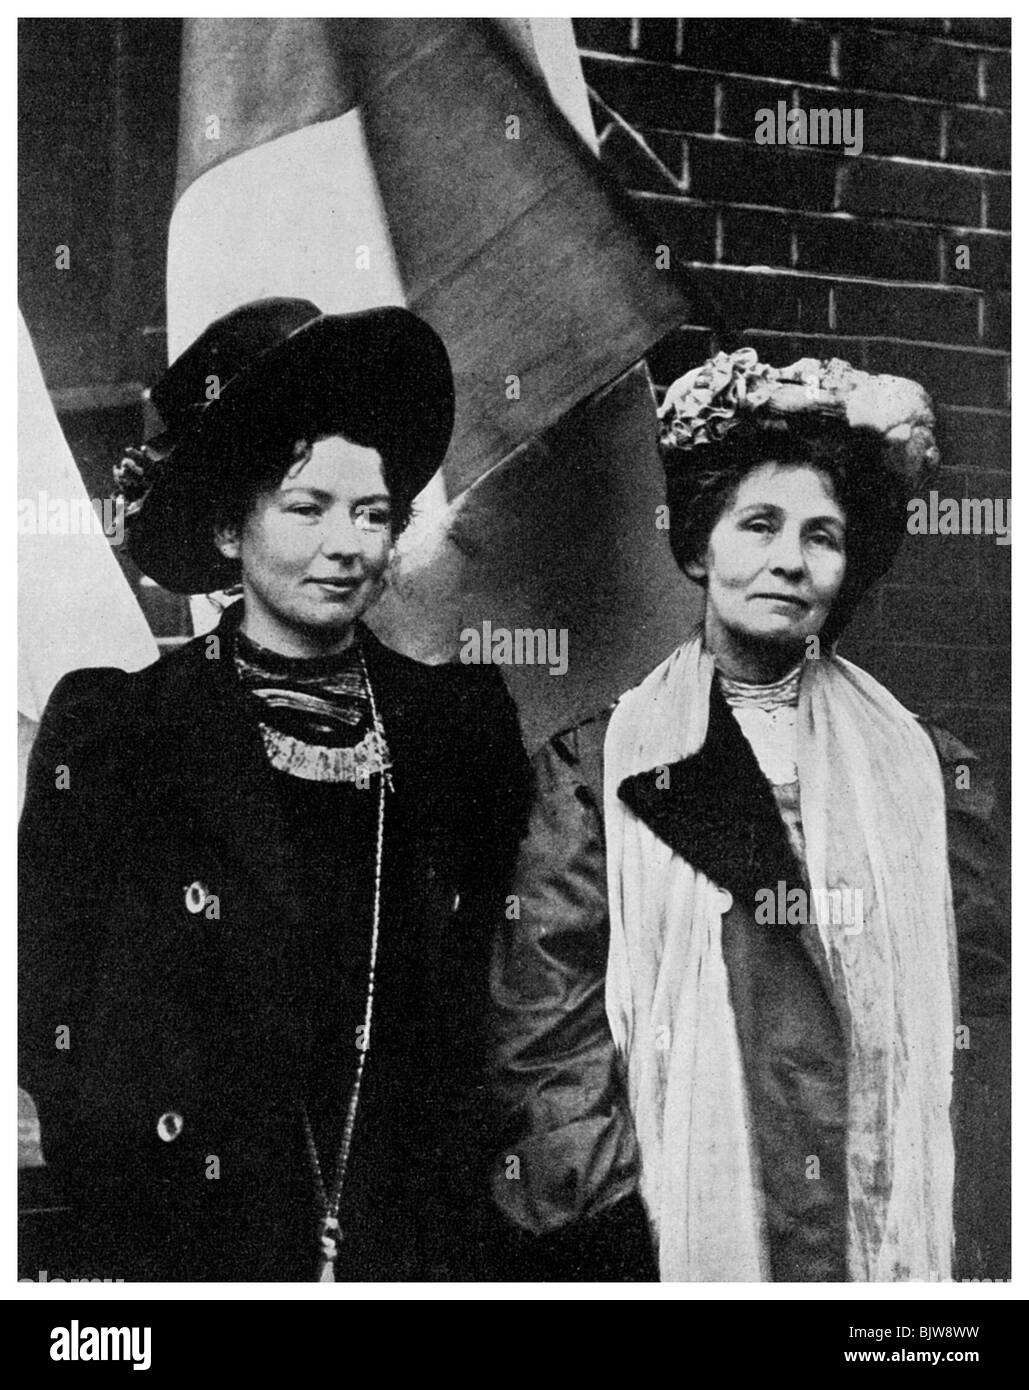 Emmeline Pankhurst, British suffragette, and her daughter Christabel, early 20th century (1956). Artist: Unknown - Stock Image